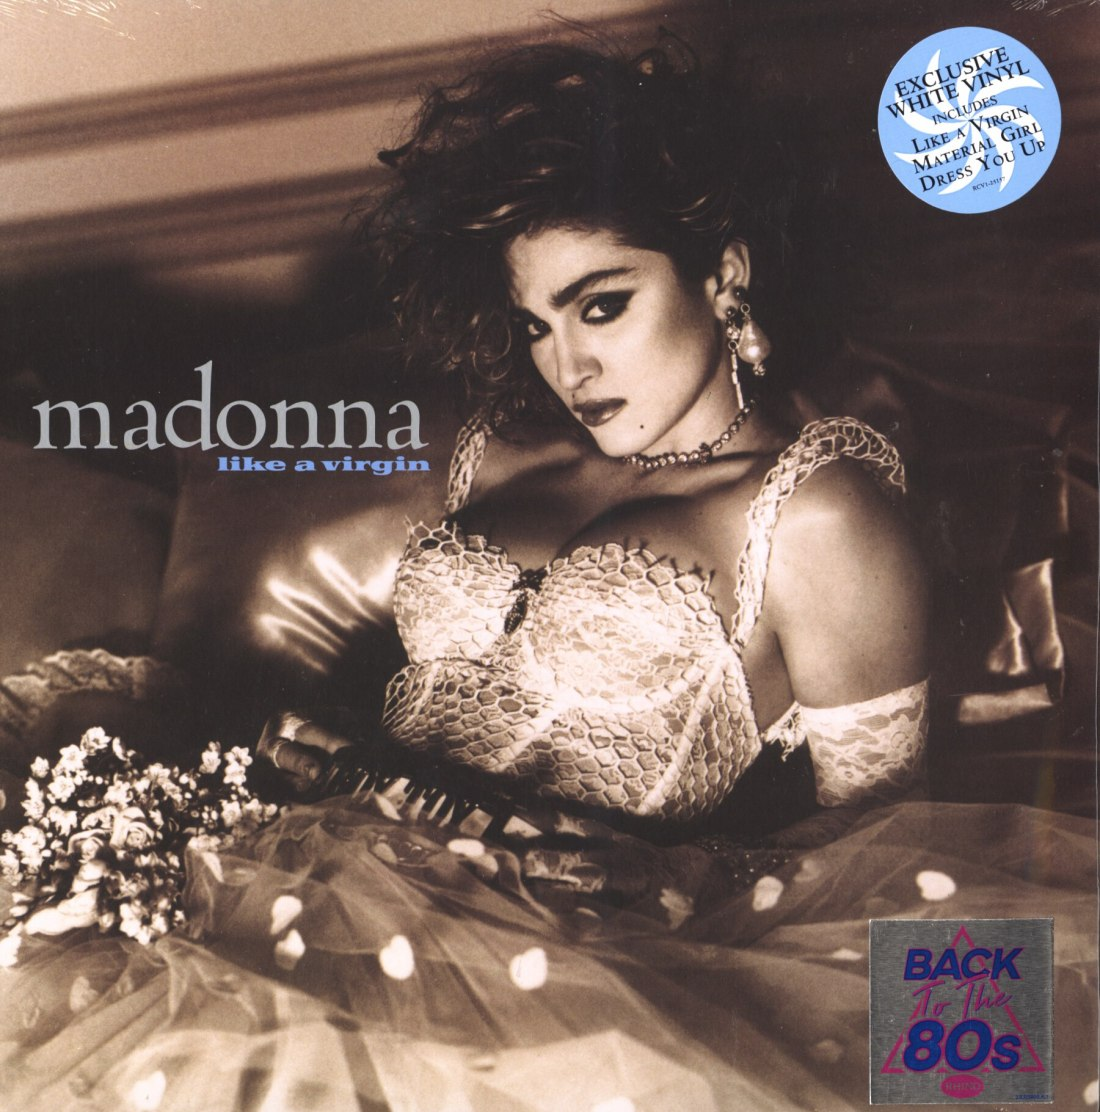 Madonna - Like A Virgin - Back To The 80s Exclusive, White Colored Vinyl, LP, 2018